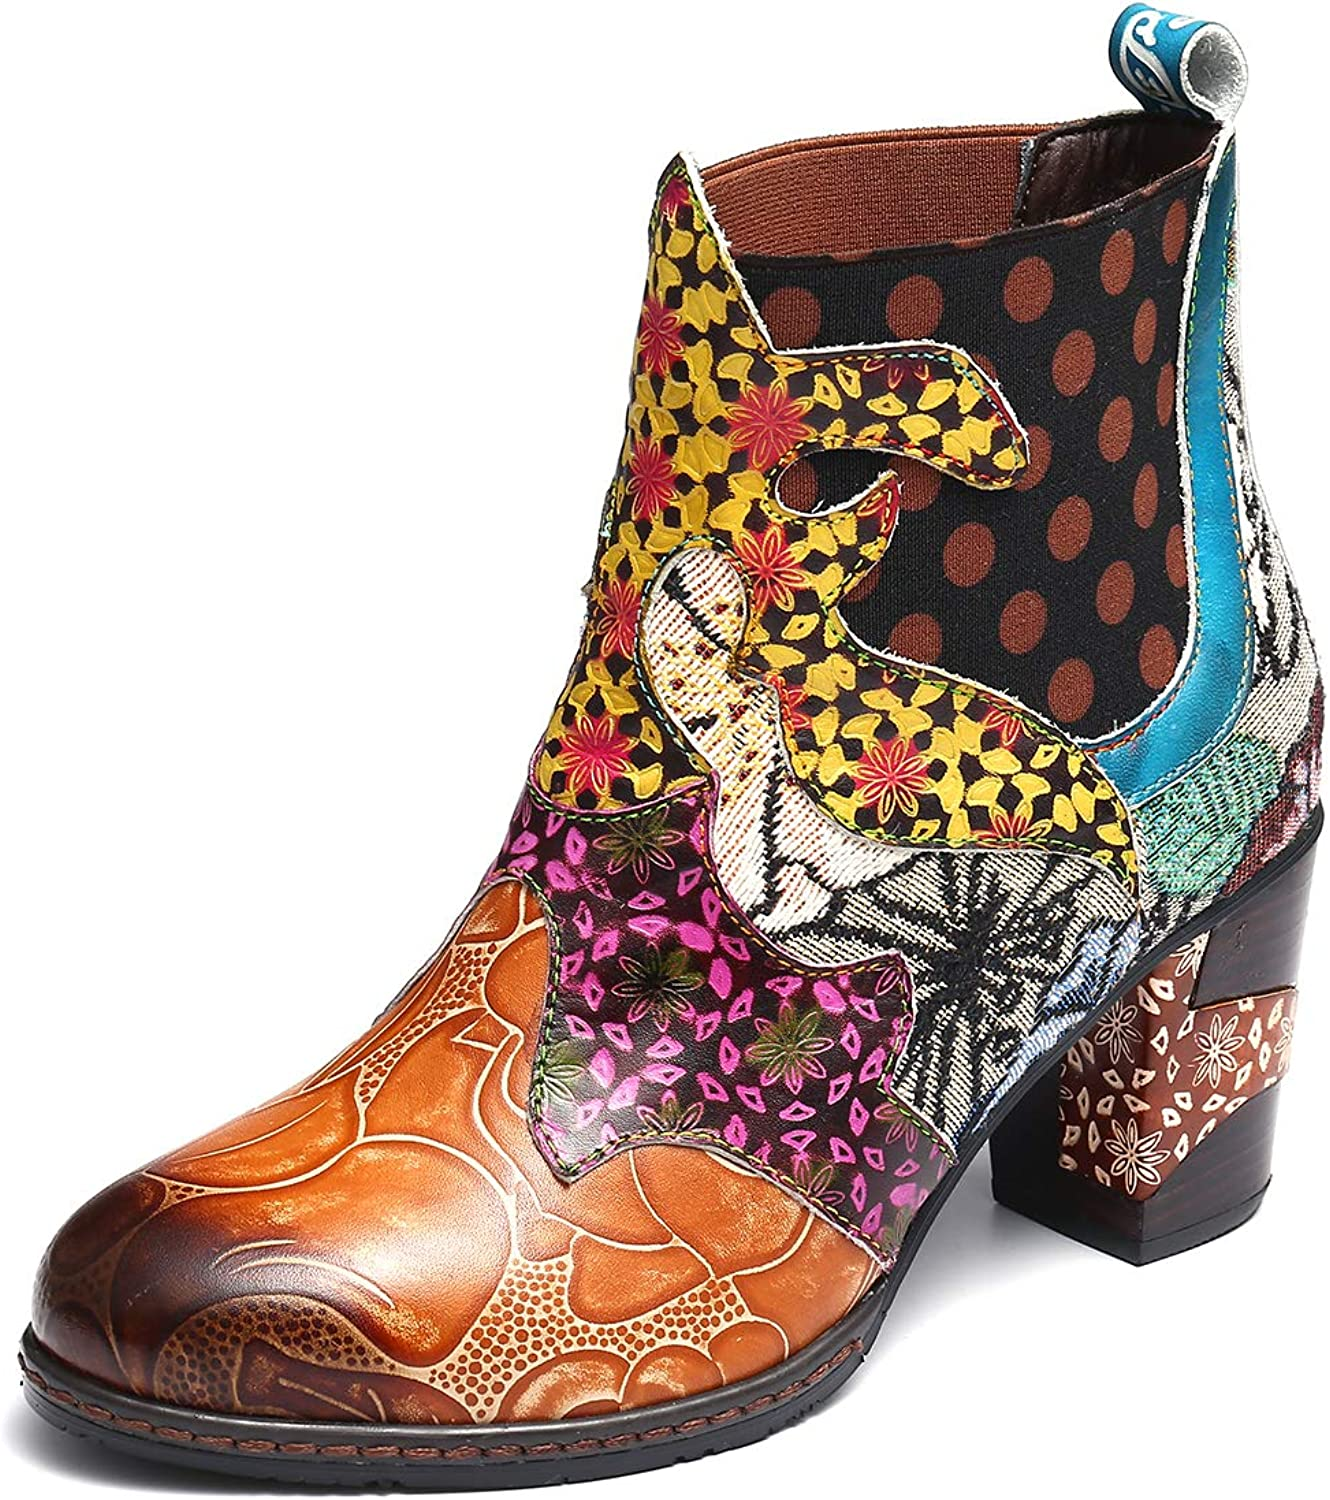 Gracosy Women Leather Ankle Boots Slip On Mid Block Heel Booties Vintage colorful Bohemian Booties Size